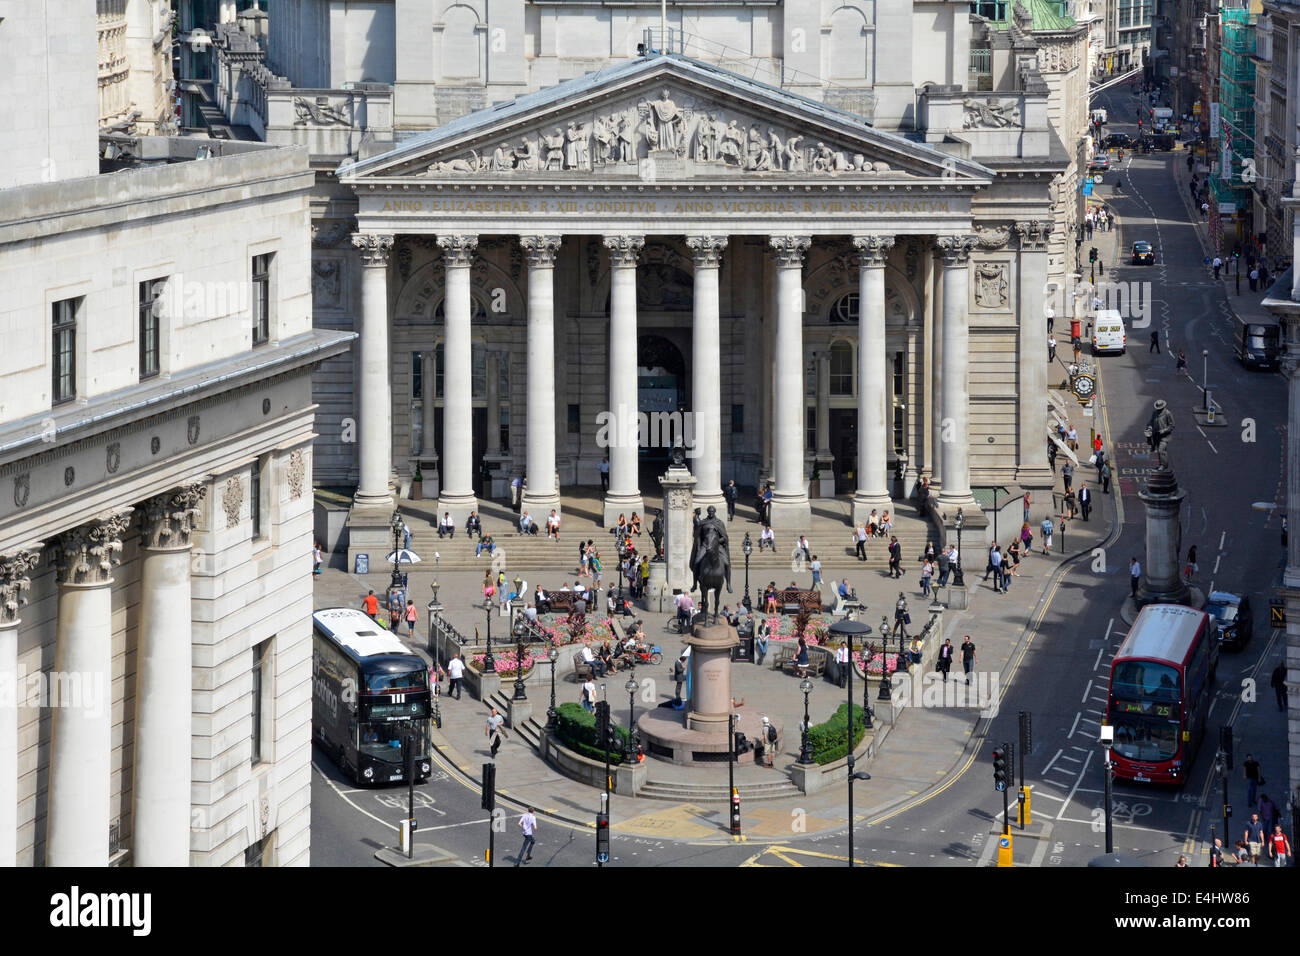 Royal Exchange building between Cornhill and Threadneedle Street at the Bank road junction - Stock Image